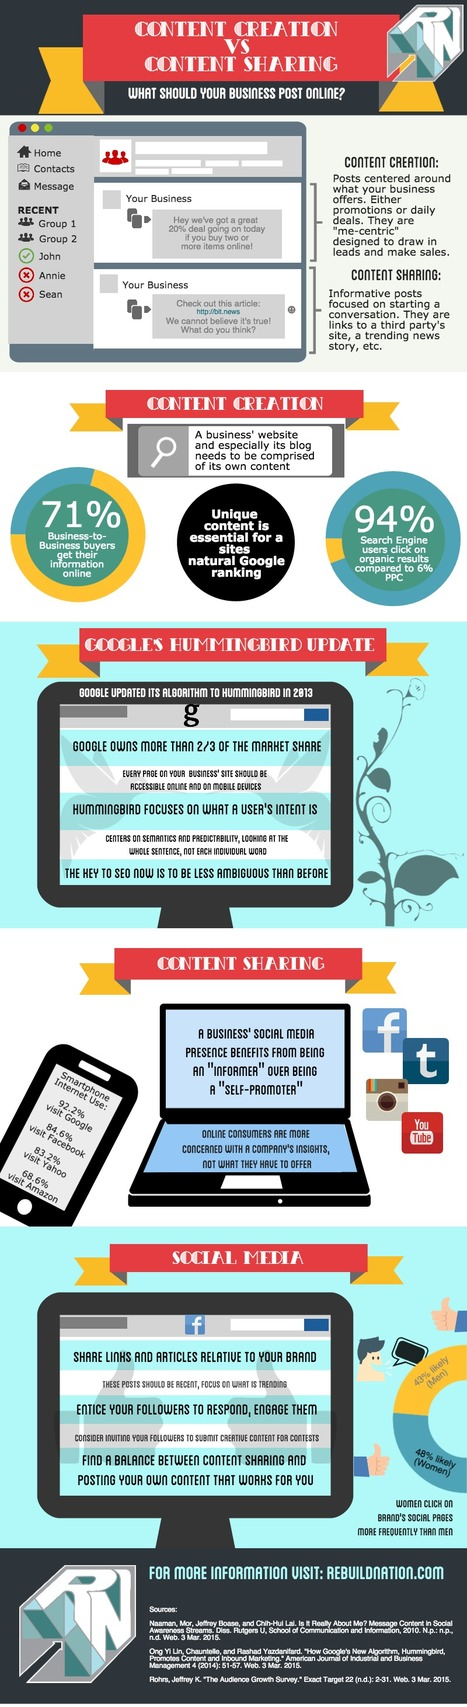 Should you Use Content Creation or Content Sharing? [Infographic] | Digital Brand Marketing | Scoop.it